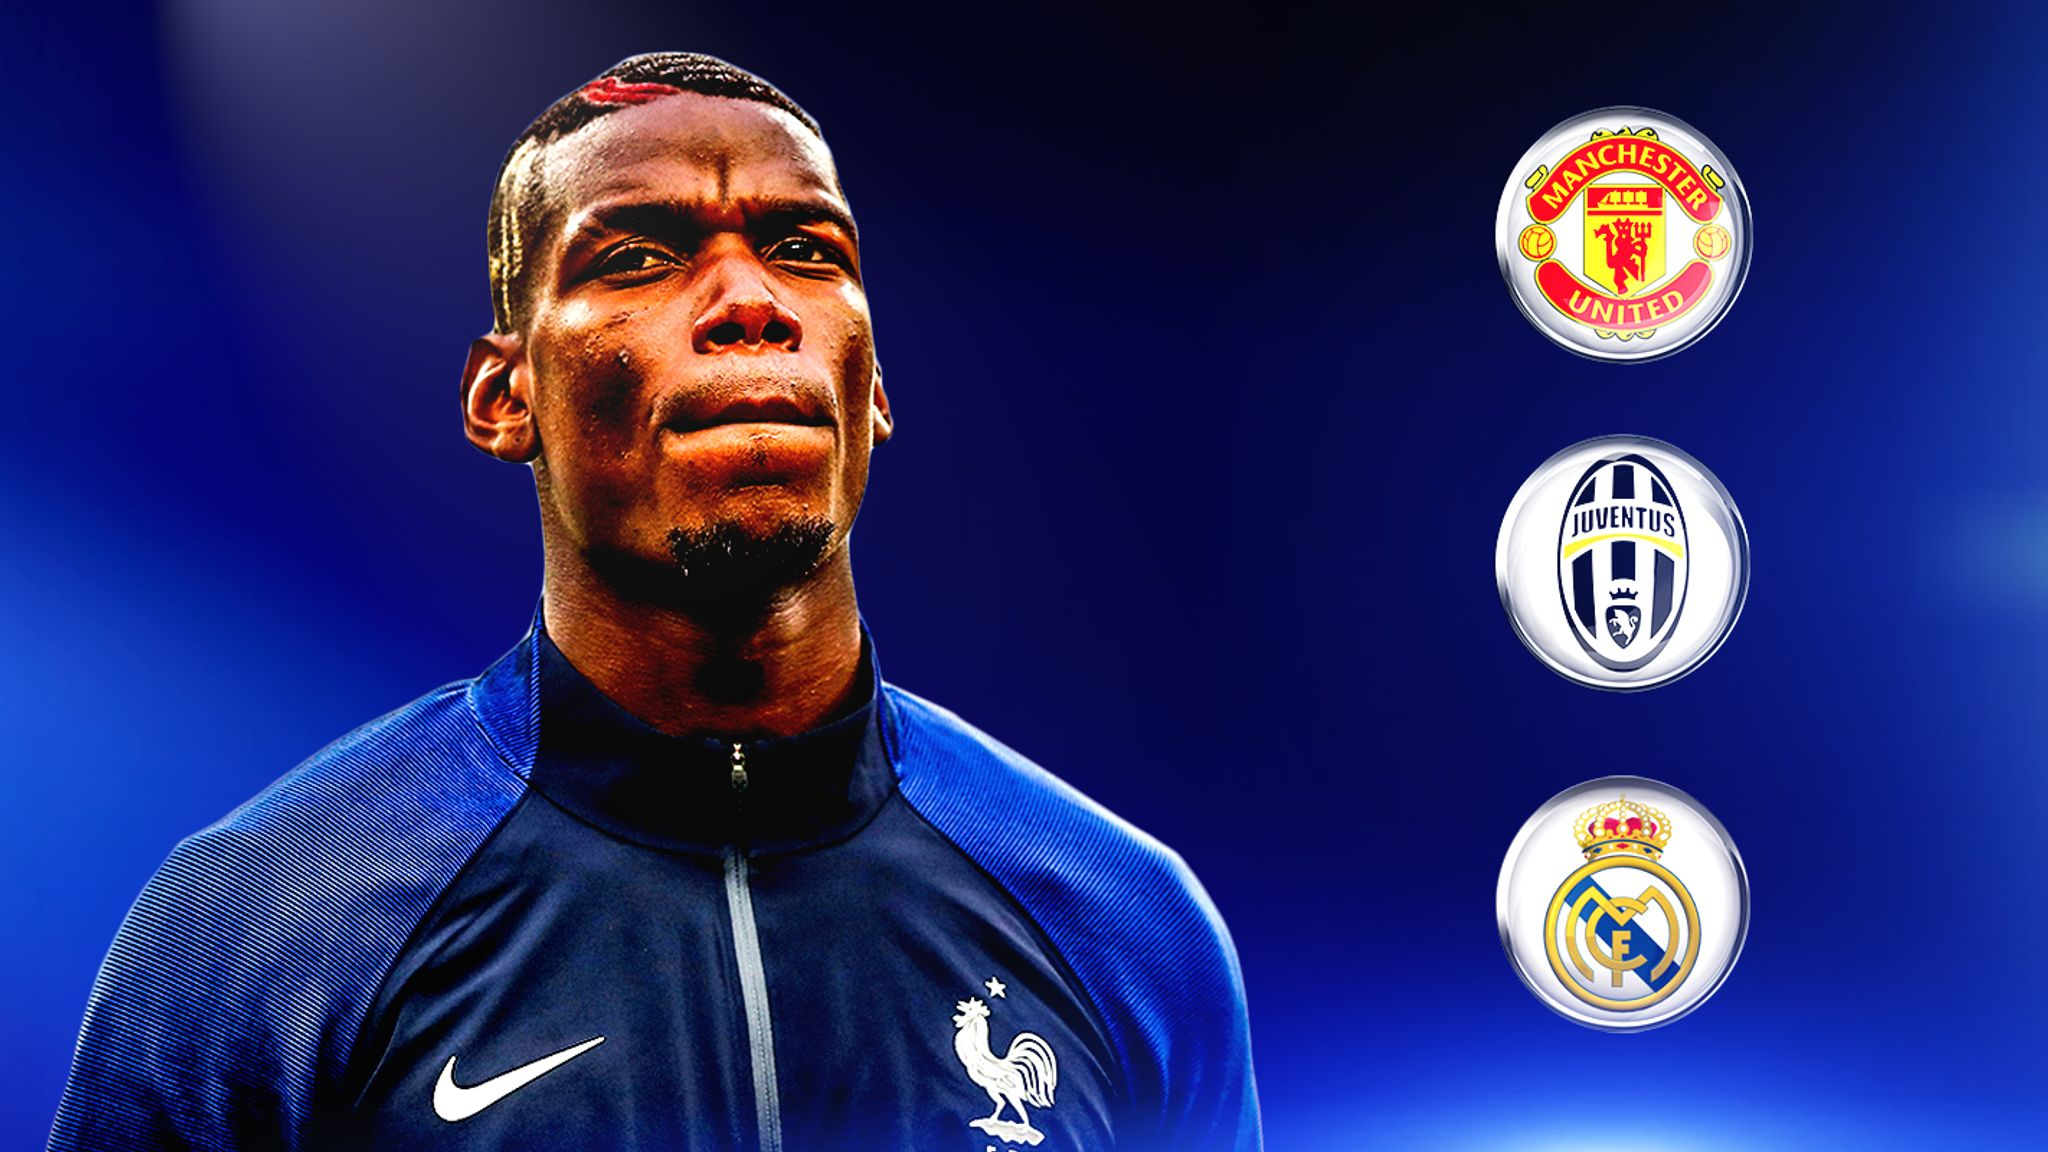 964c28f772ac1 Paul Pogba: Euro 2016 poster boy still waiting for lift-off with ...